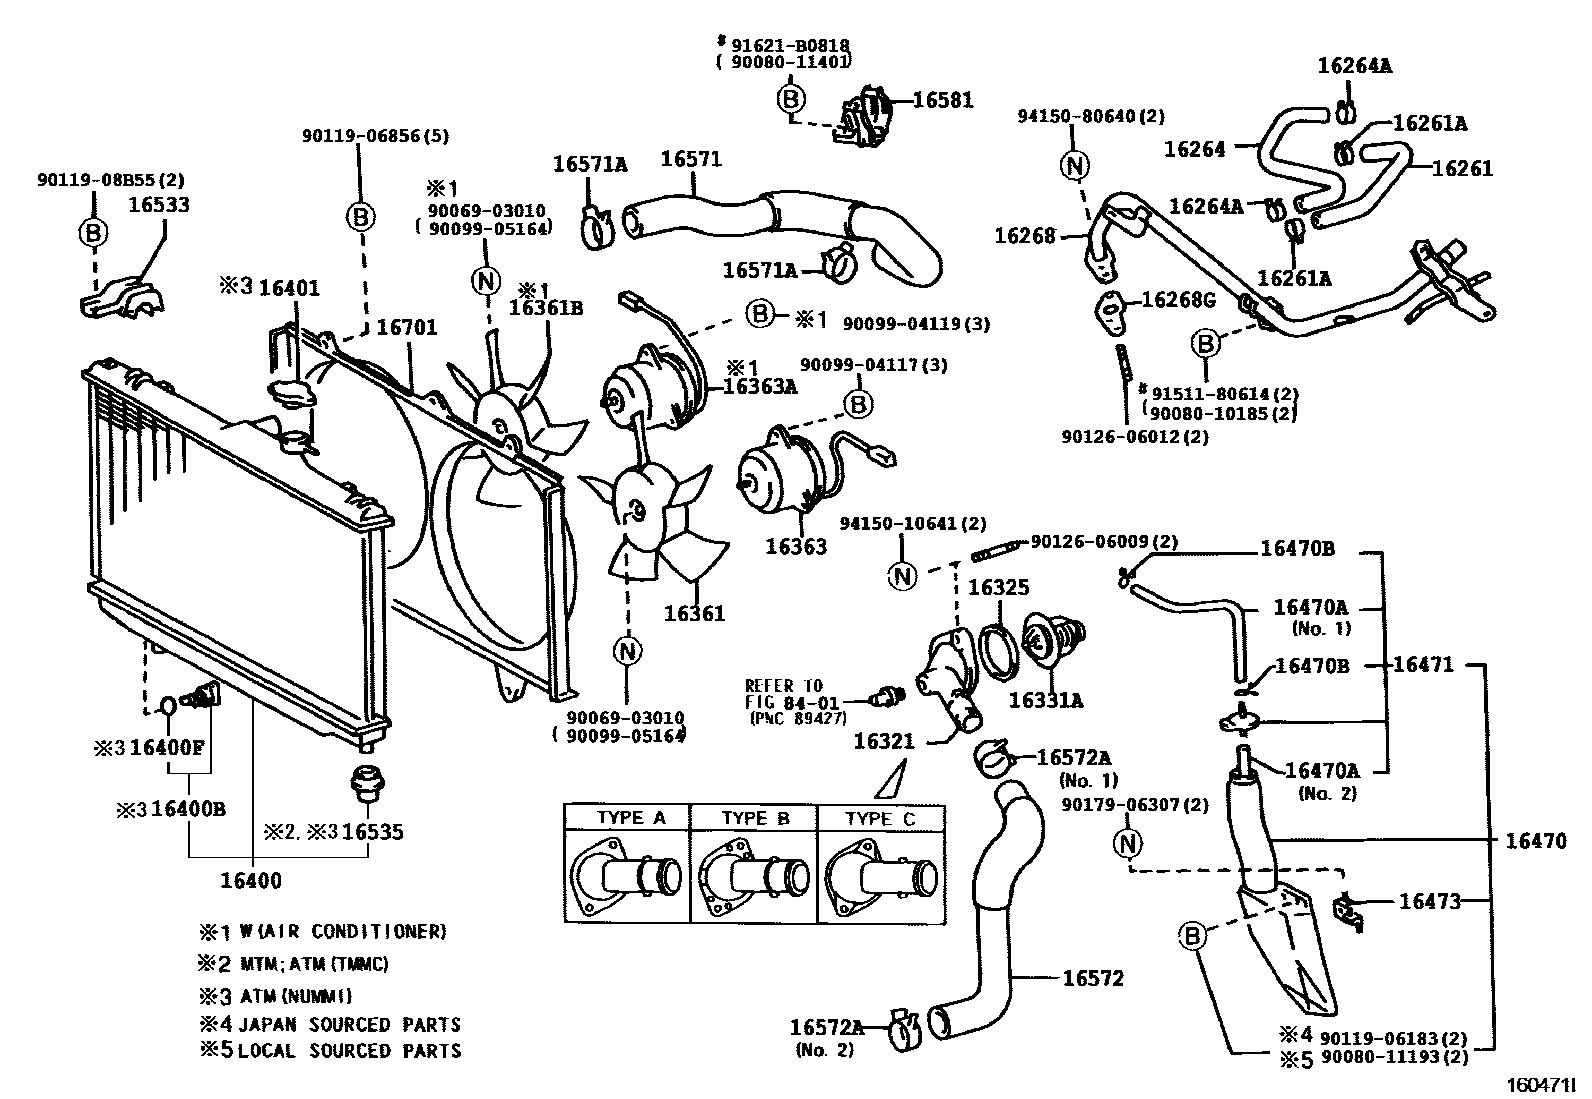 29ecq Provide Procedure Removing Replacing besides Buick Radiator Diagram additionally 4bm1q 2000 Hyundai Purge Diagram Handyalso Evap Canister Location in addition 3 8 Buick Engine Diagram 1988 in addition Pontiac G5 Thermostat Location. on 2005 buick lacrosse radiator hose